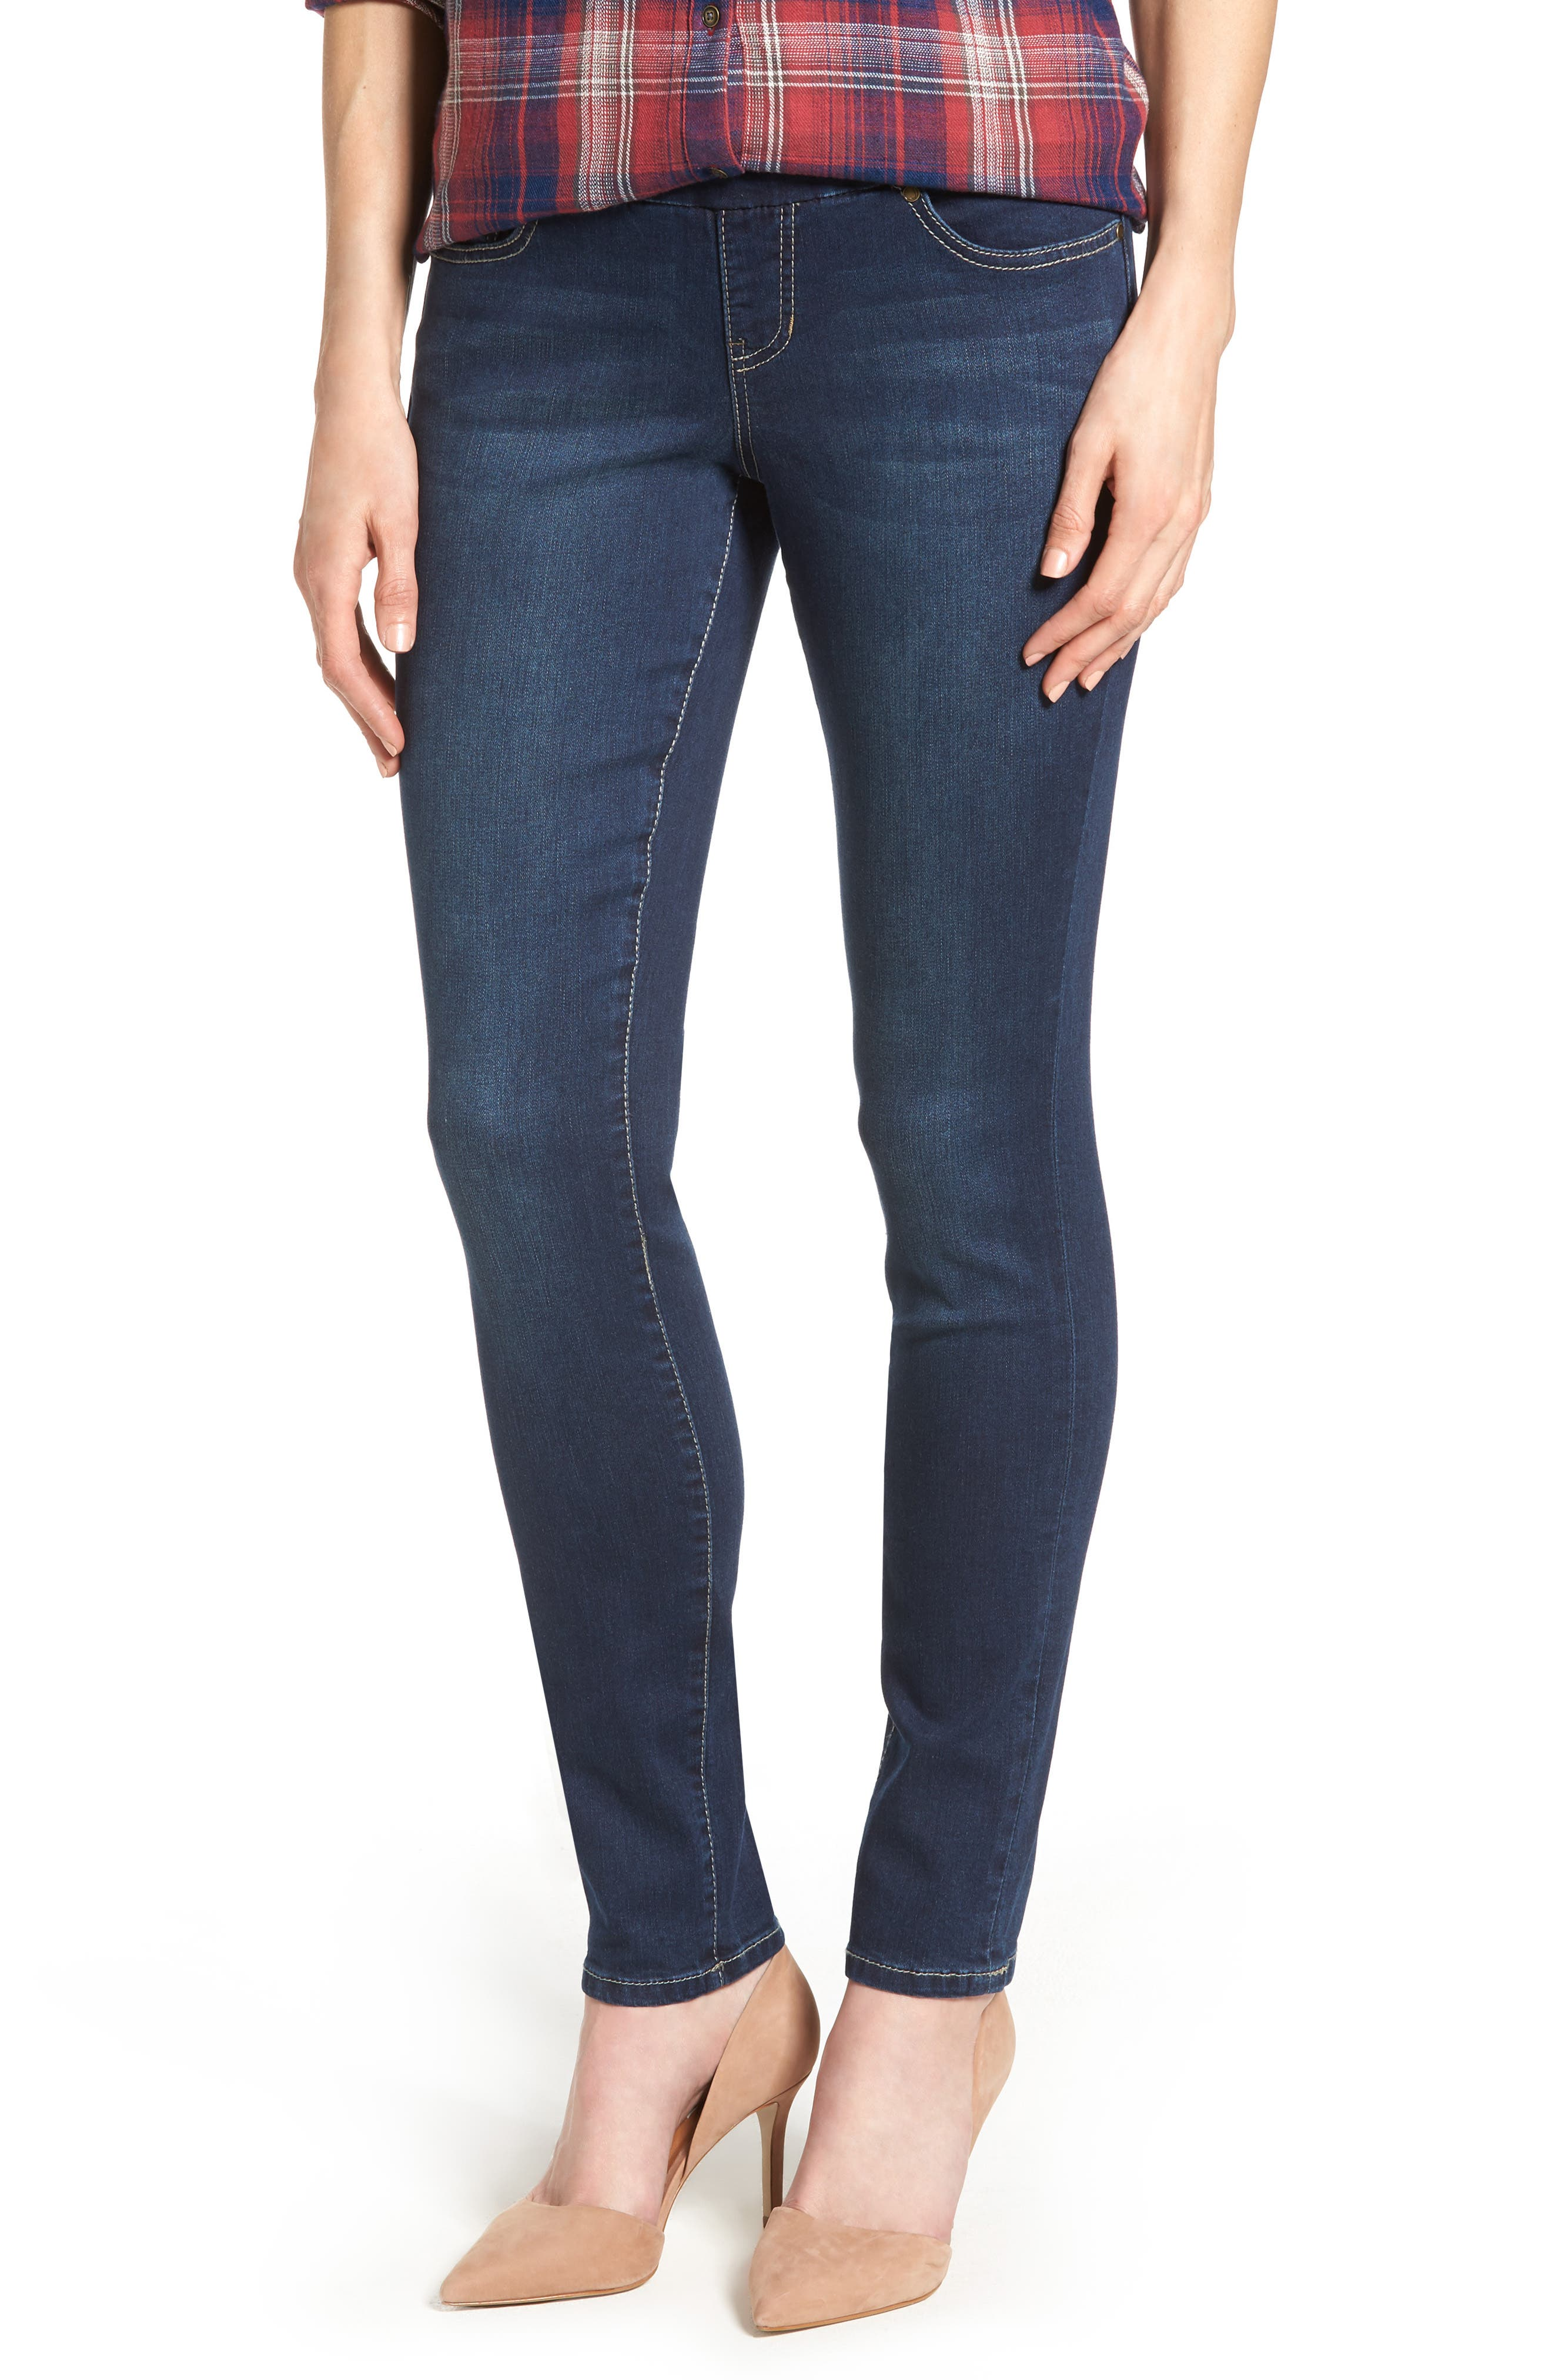 Main Image - Jag Jeans Nora Stretch Skinny Jeans